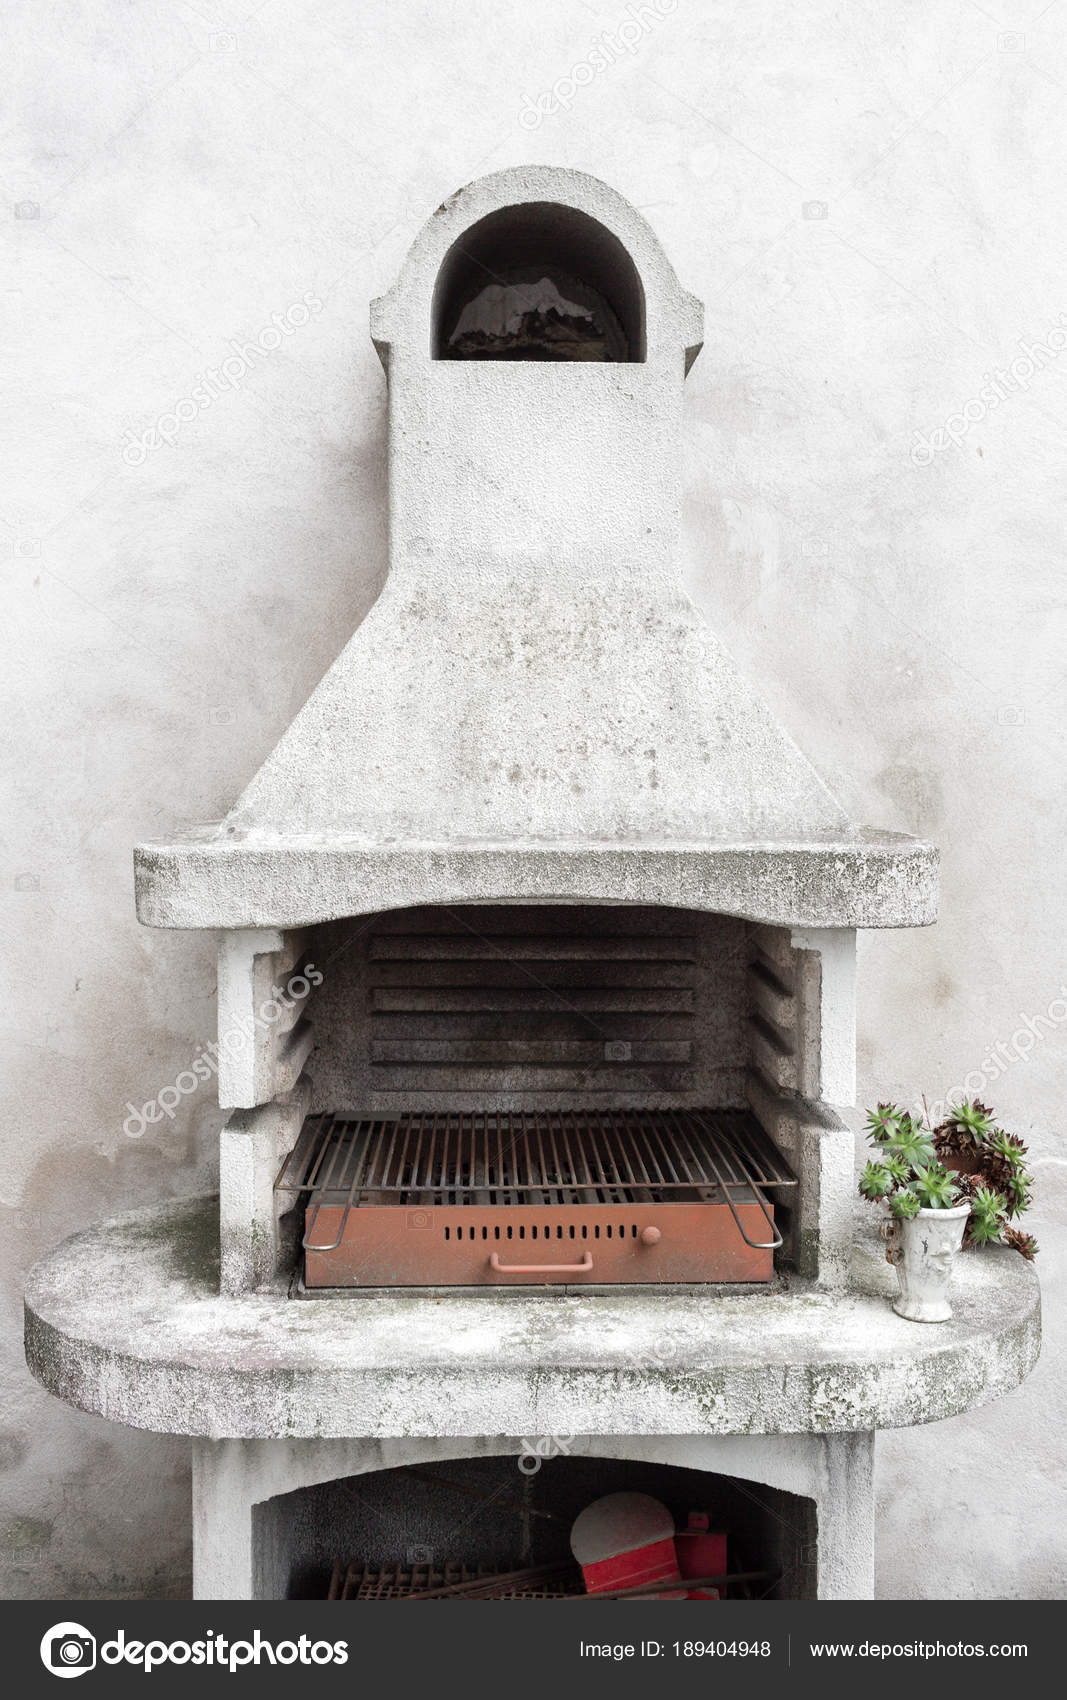 Smoky Antique Brick Oven Outdoor With Ashes Inside Old Garden